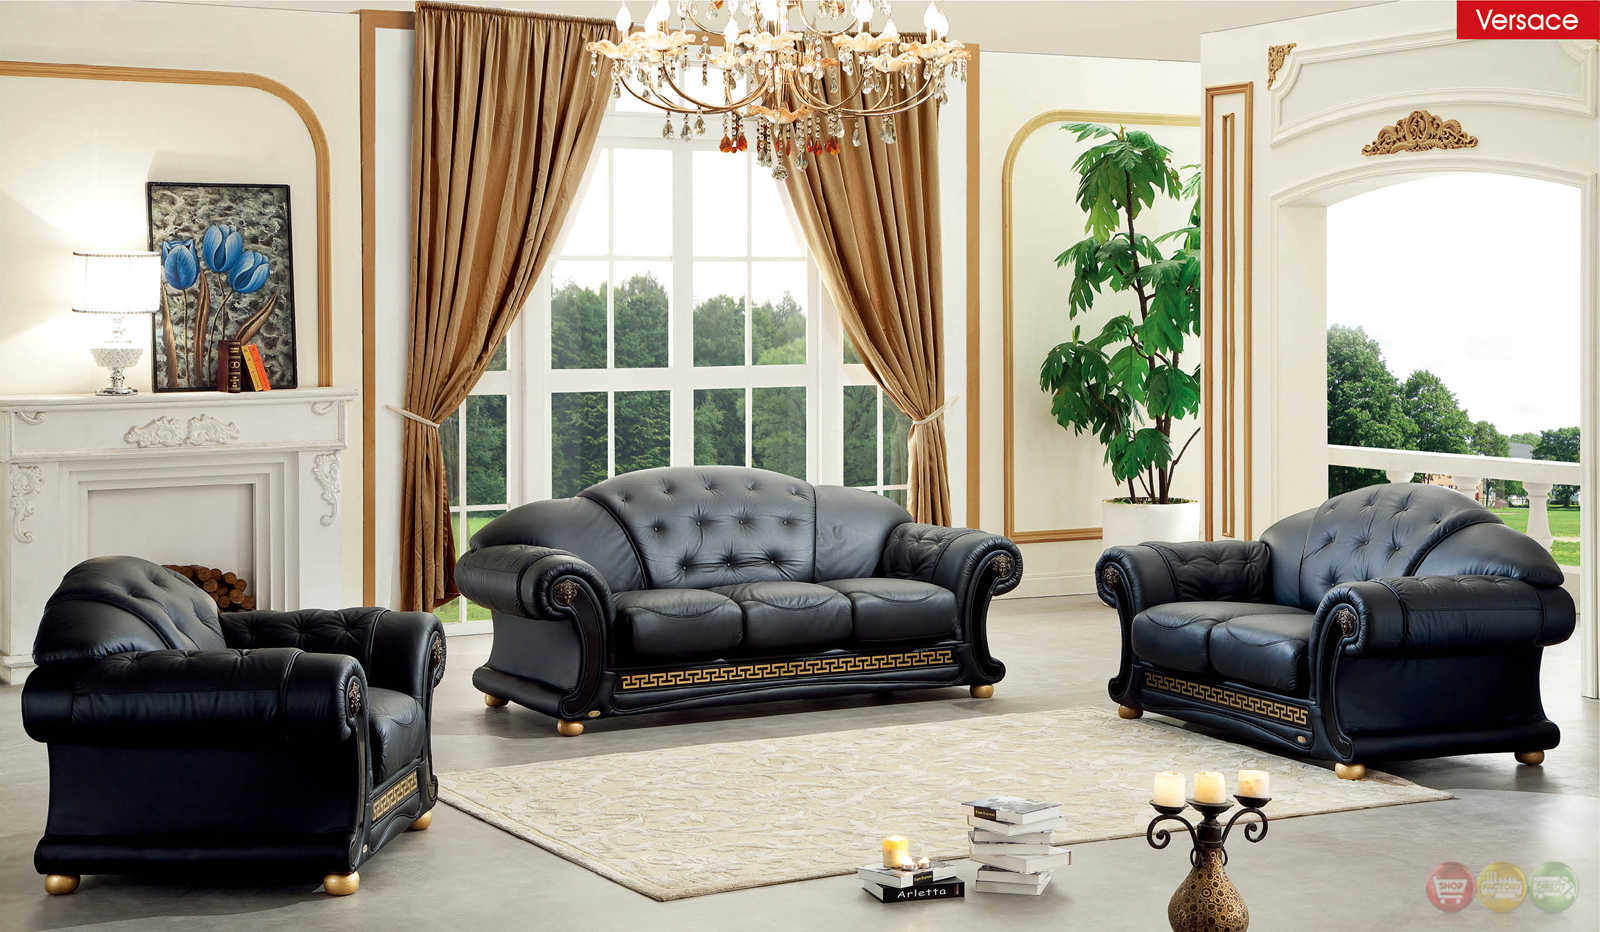 Versace Black Genuine Top Grain Italian Leather Luxurious Living Room Sofa Set